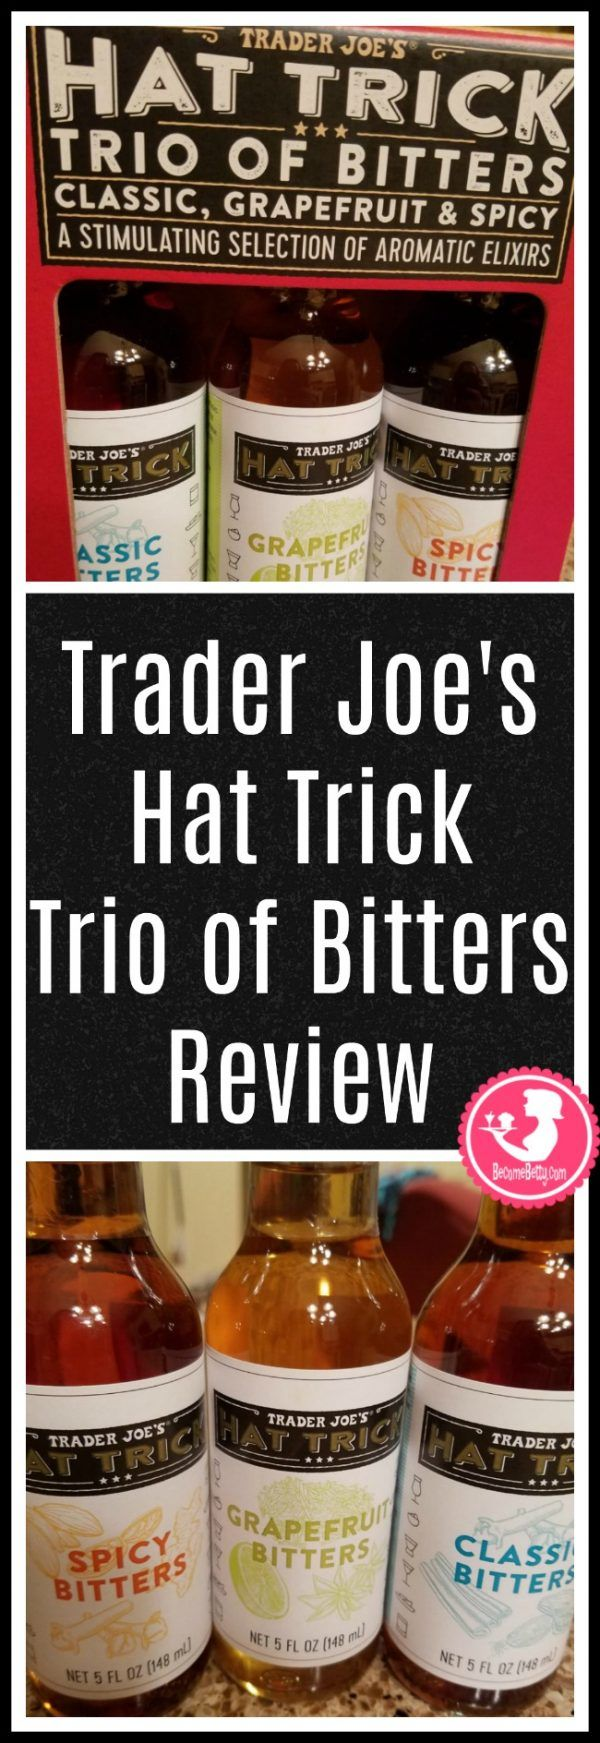 Trader Joe S Hat Trick Trio Of Bitters Review Want To Know If This Is Something Worth Putting On Your Shopp Trader Joes Entertaining Drinks Trader Joes Drinks